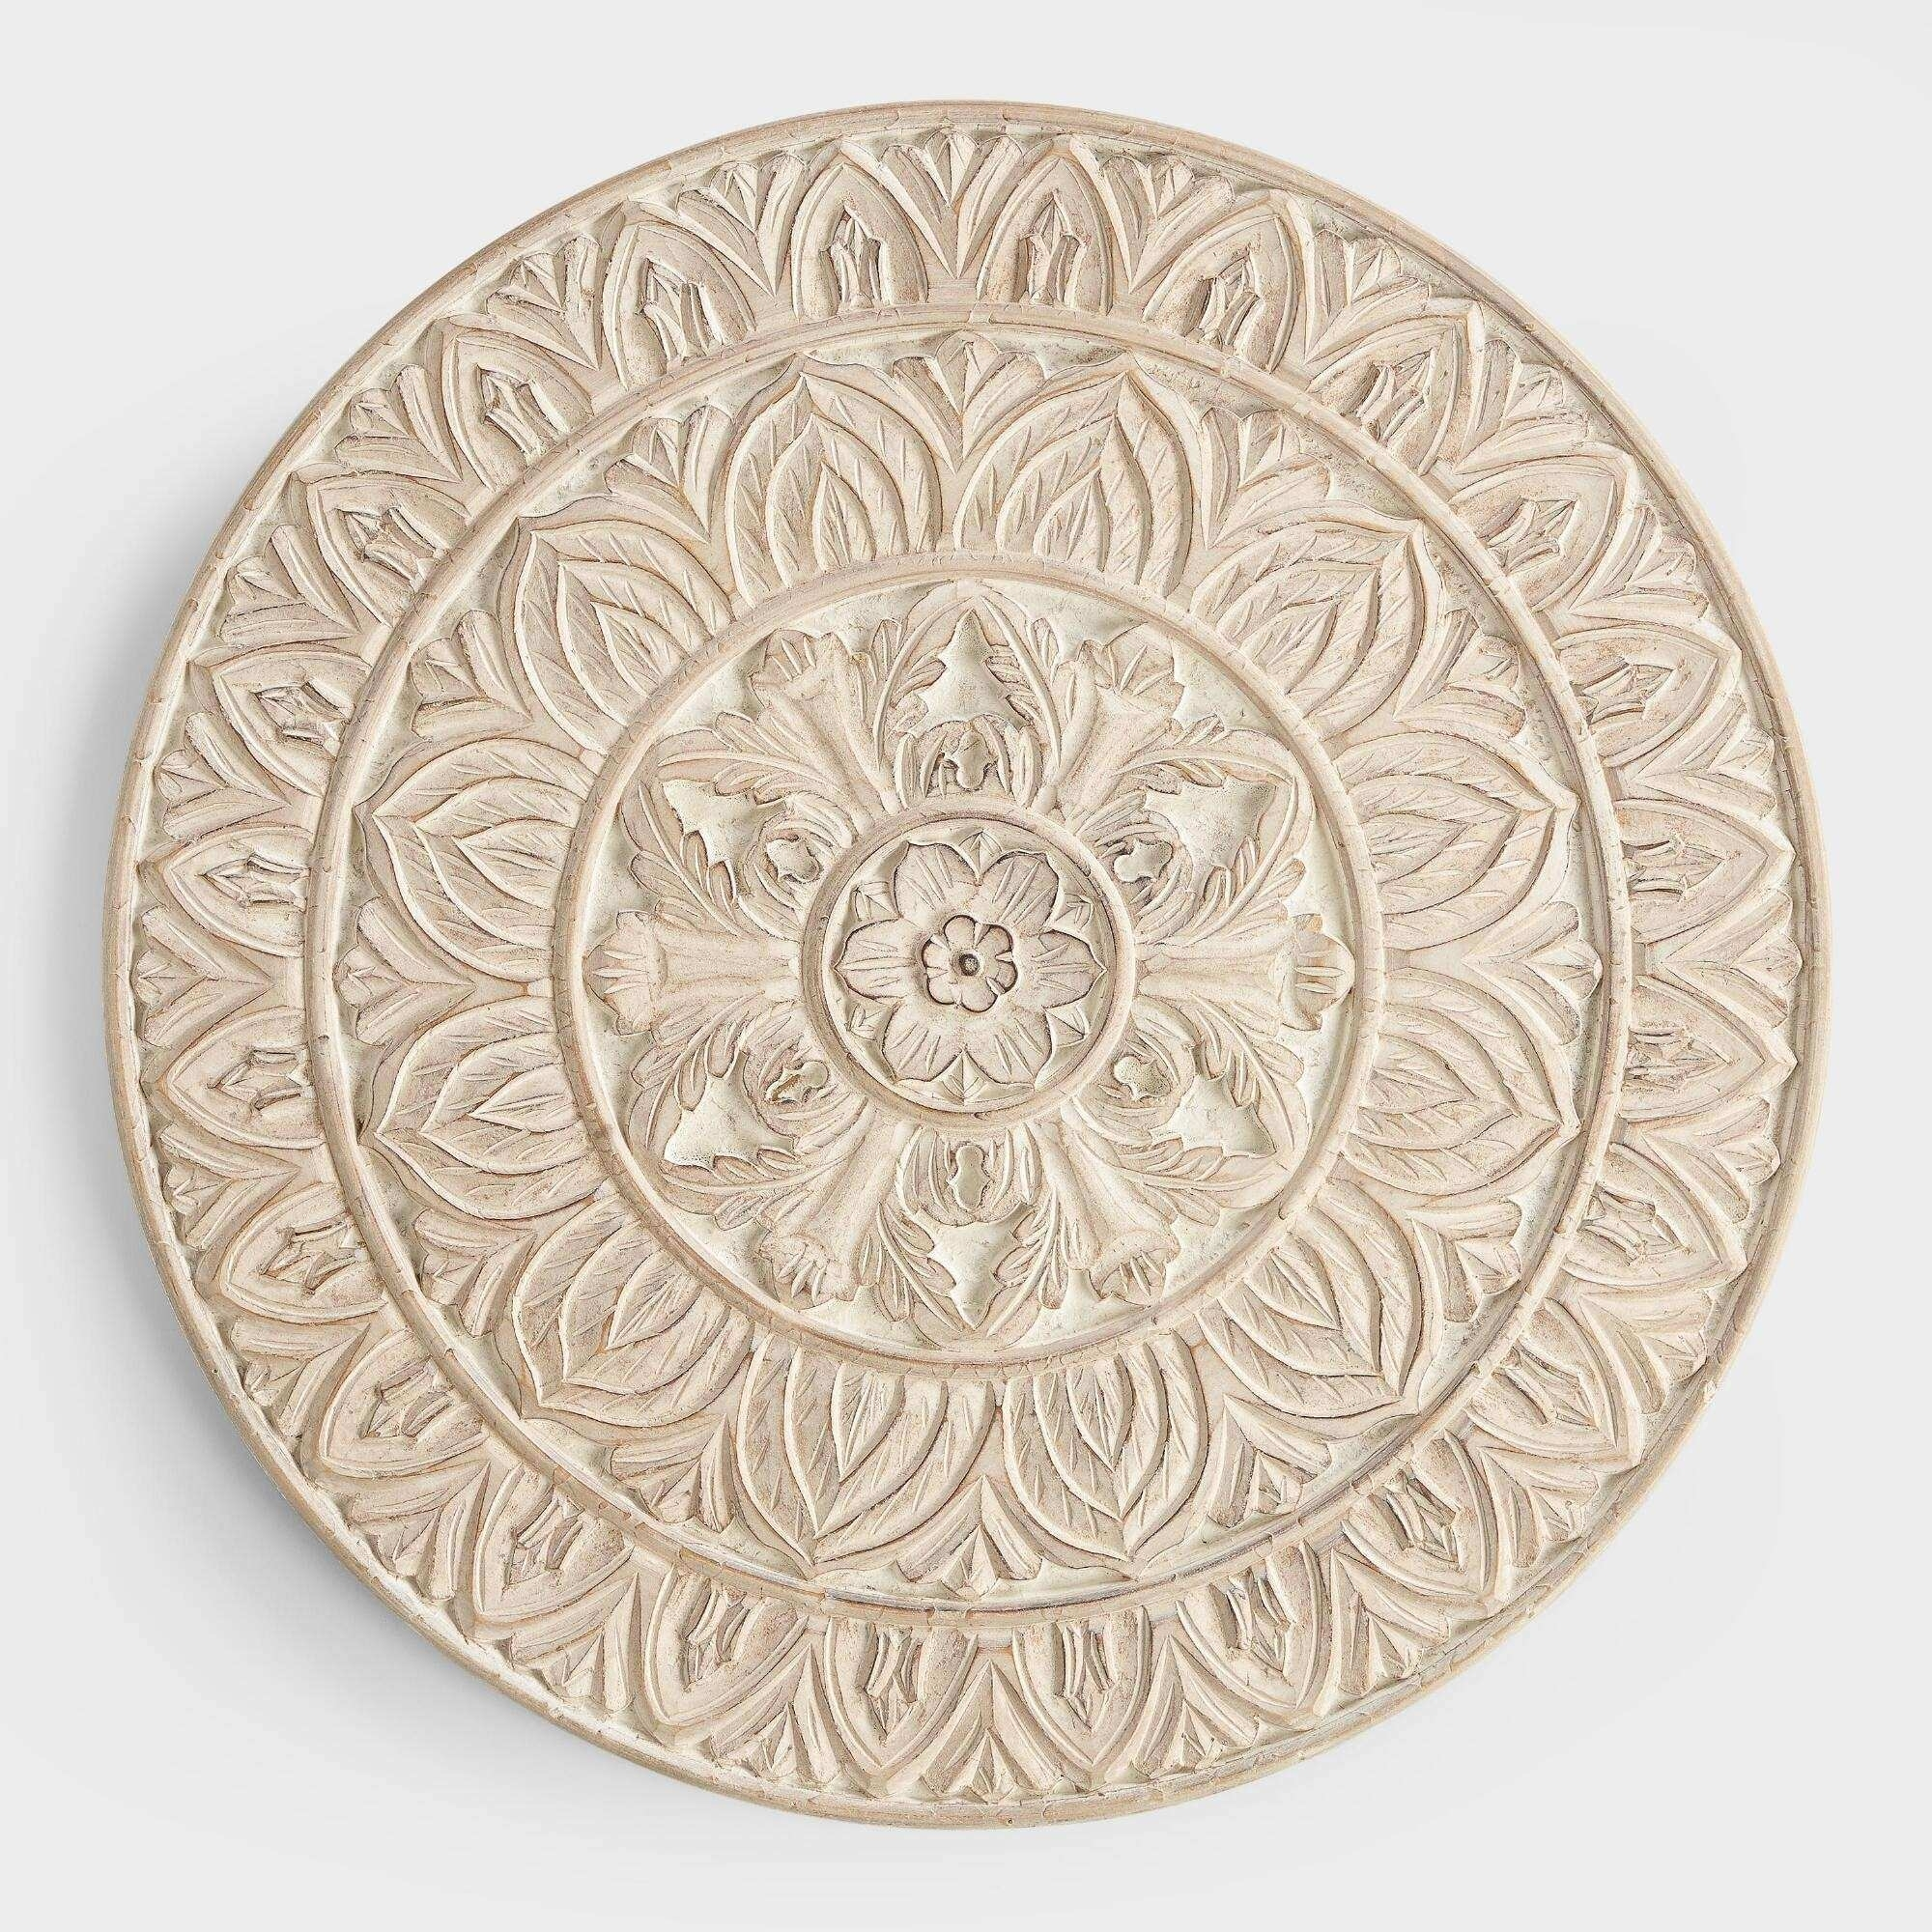 Round Wood Wall Art Best Of Whitewashed Round Wood Shaila Wall Decor Throughout Most Popular Round Wood Wall Art (View 10 of 15)